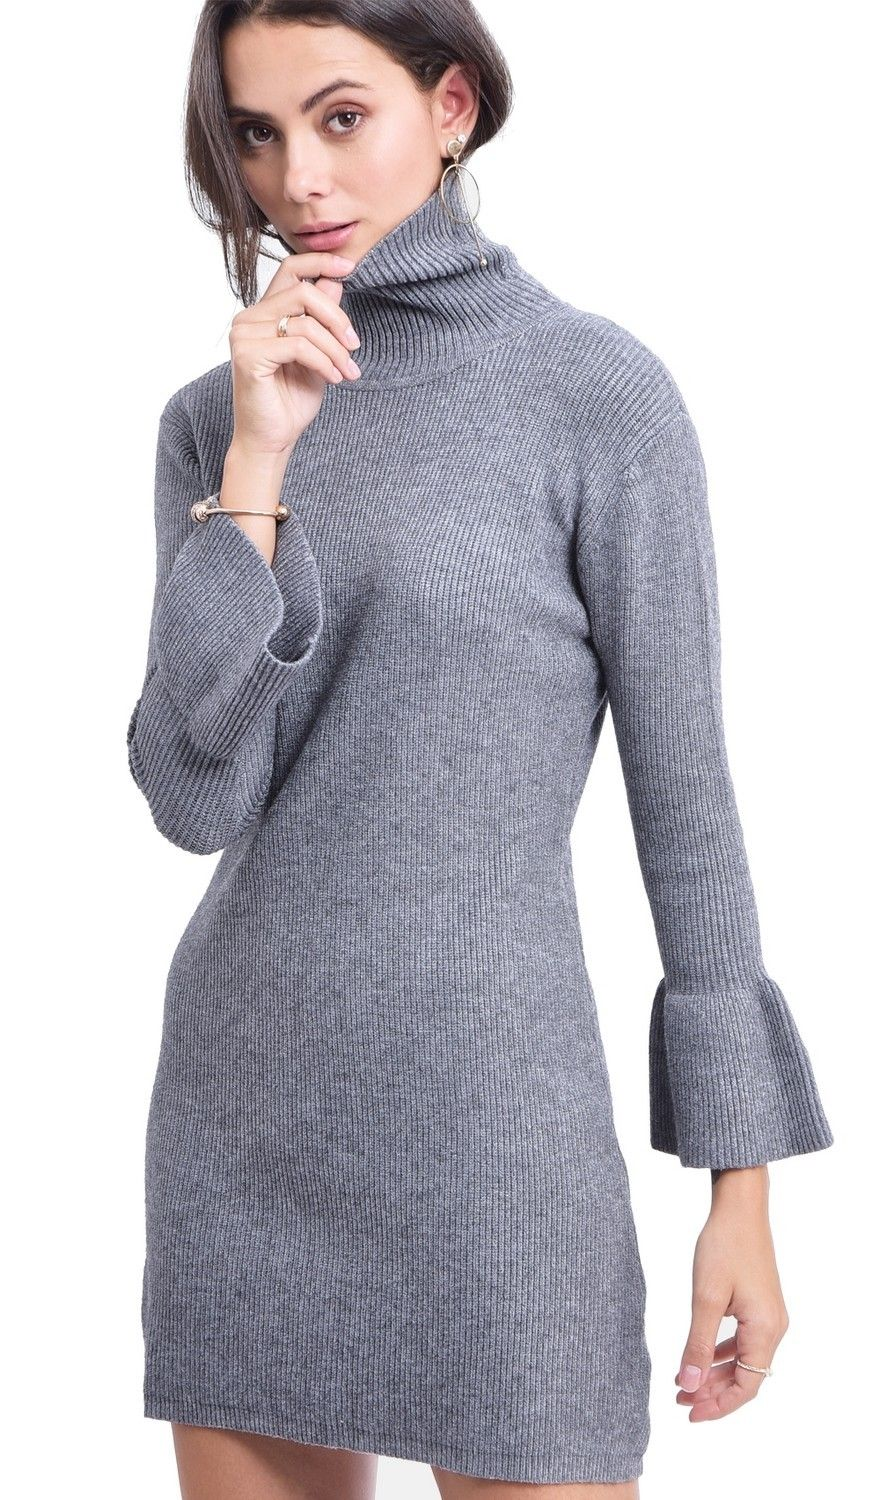 Assuili Roll Neck Dress with Babydoll Sleeves in Grey